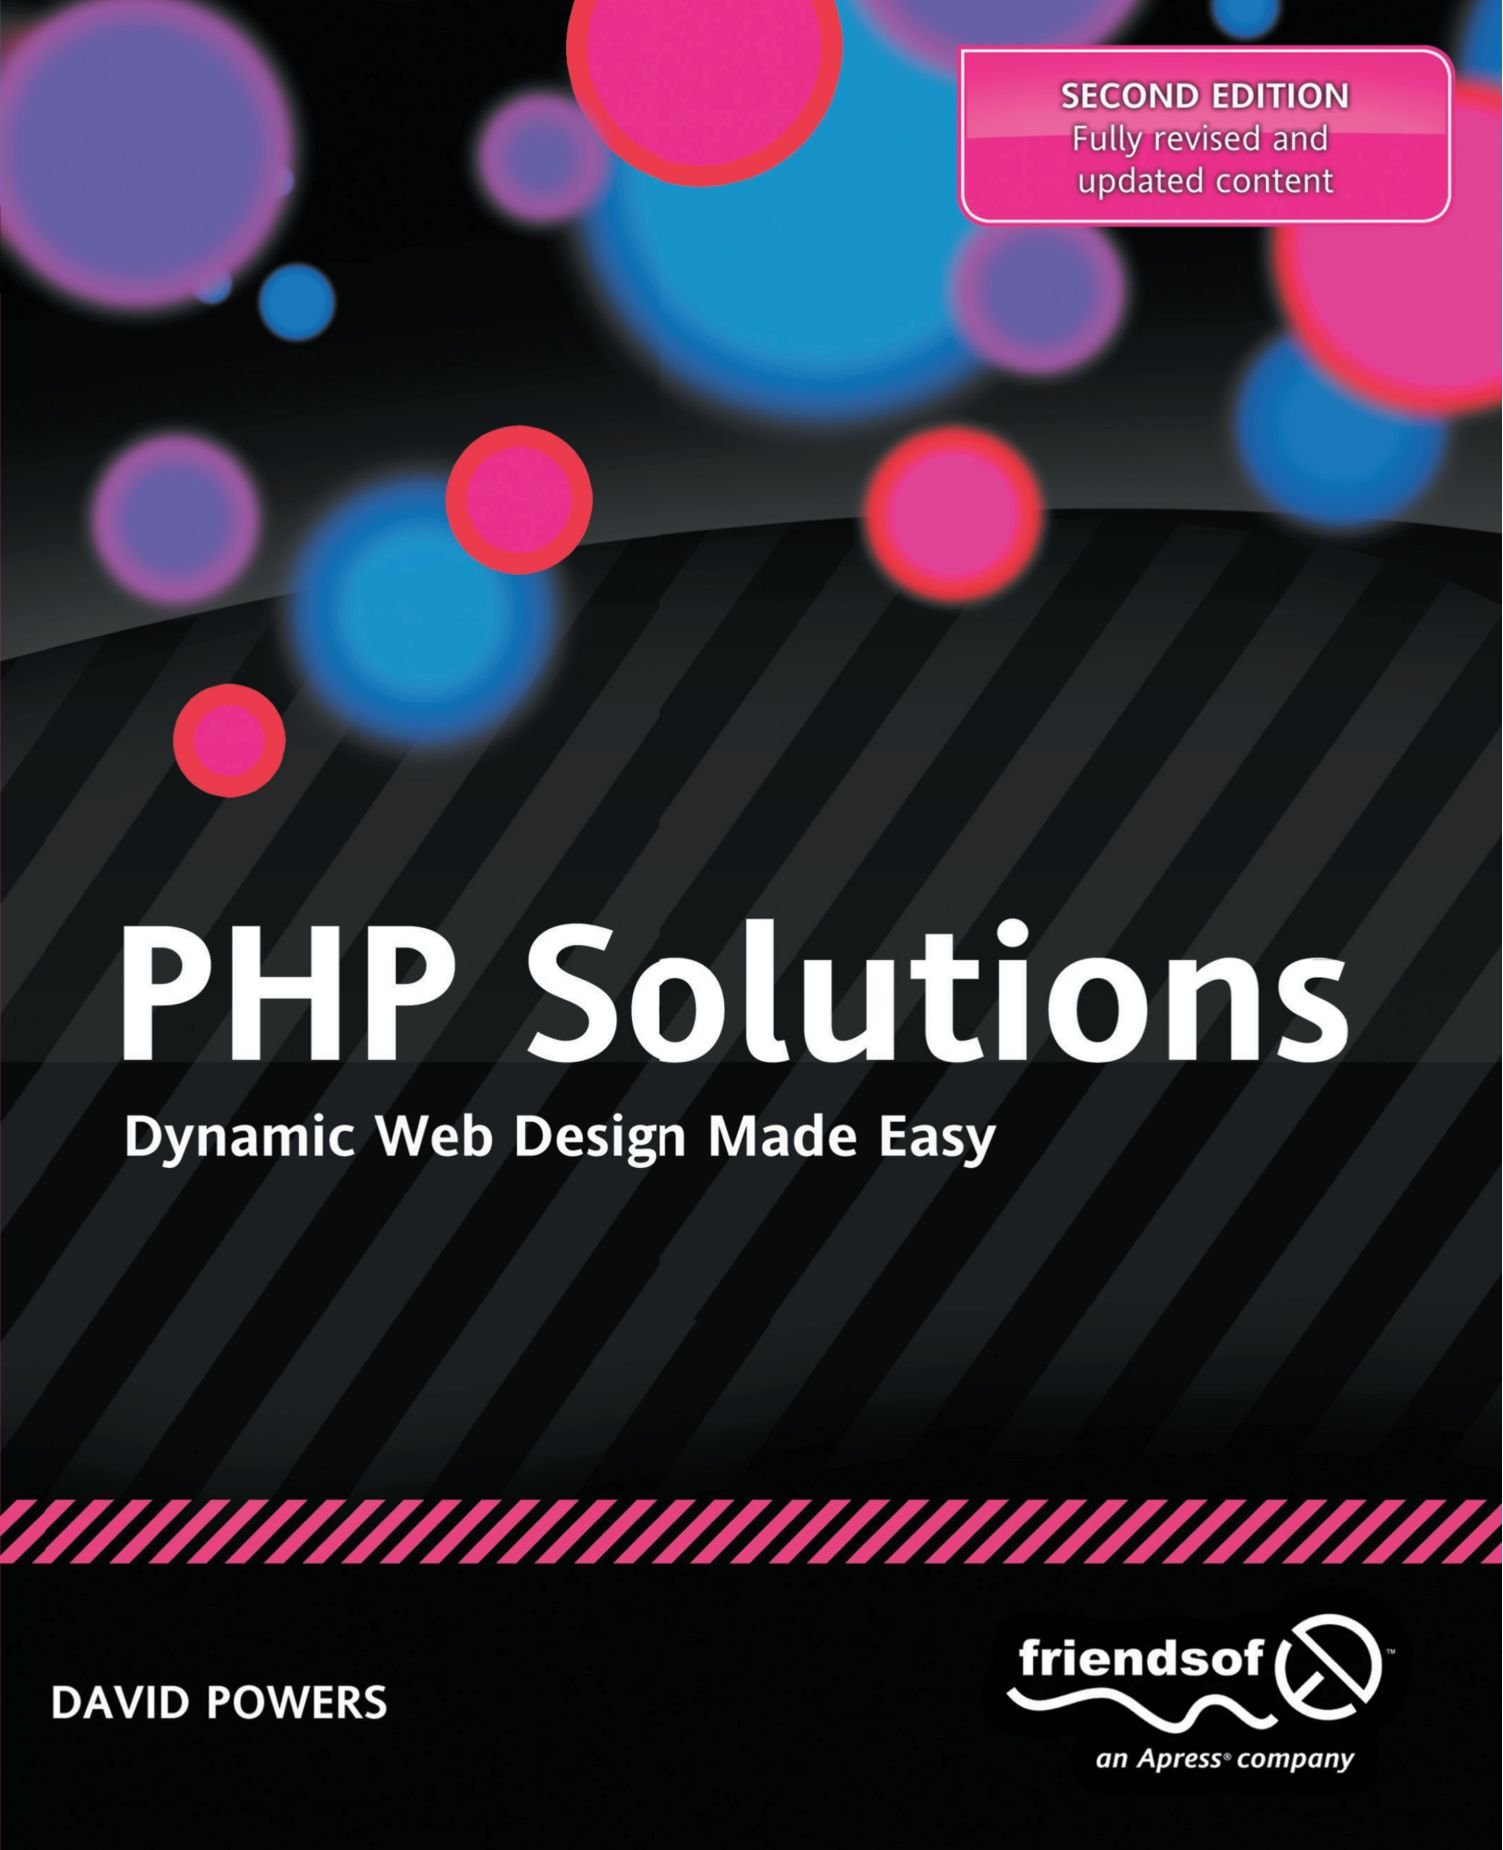 PHP Solutions: Dynamic Web Design Made Easy ISBN-13 9781430232490